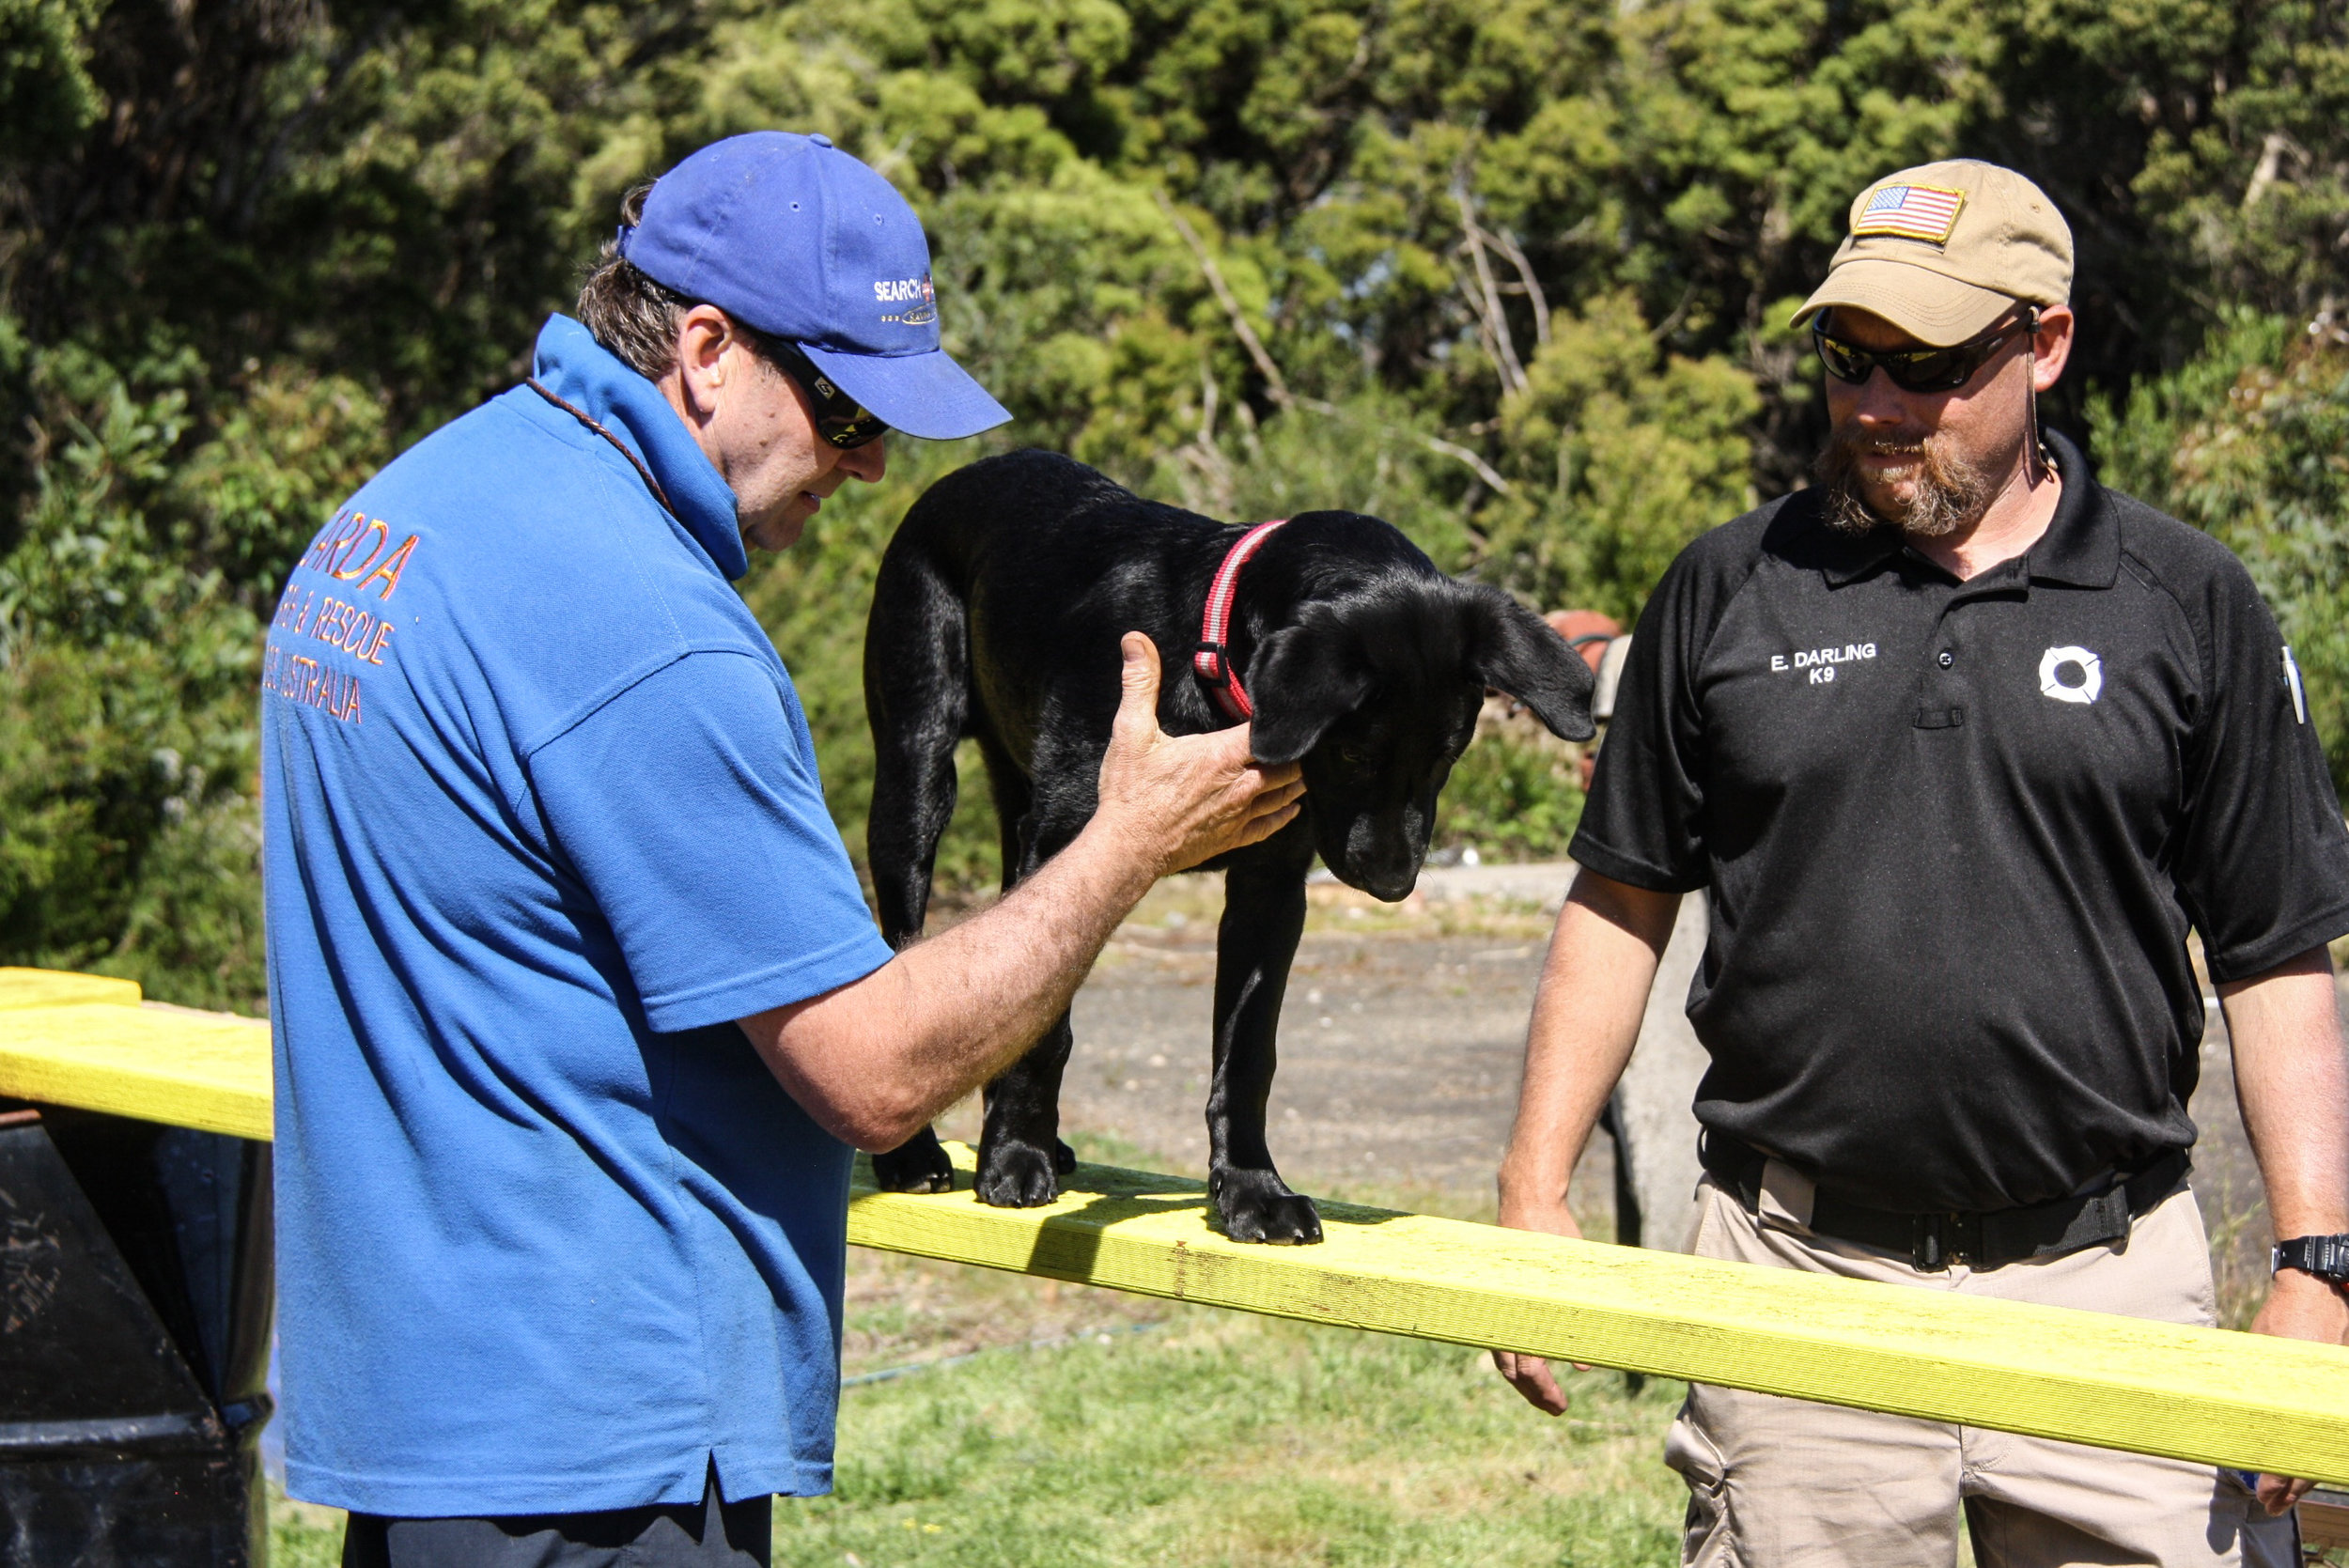 Handler Andrew Cowan guides K9 Ari (SARDA) through the agility course with instructor Eric Darling